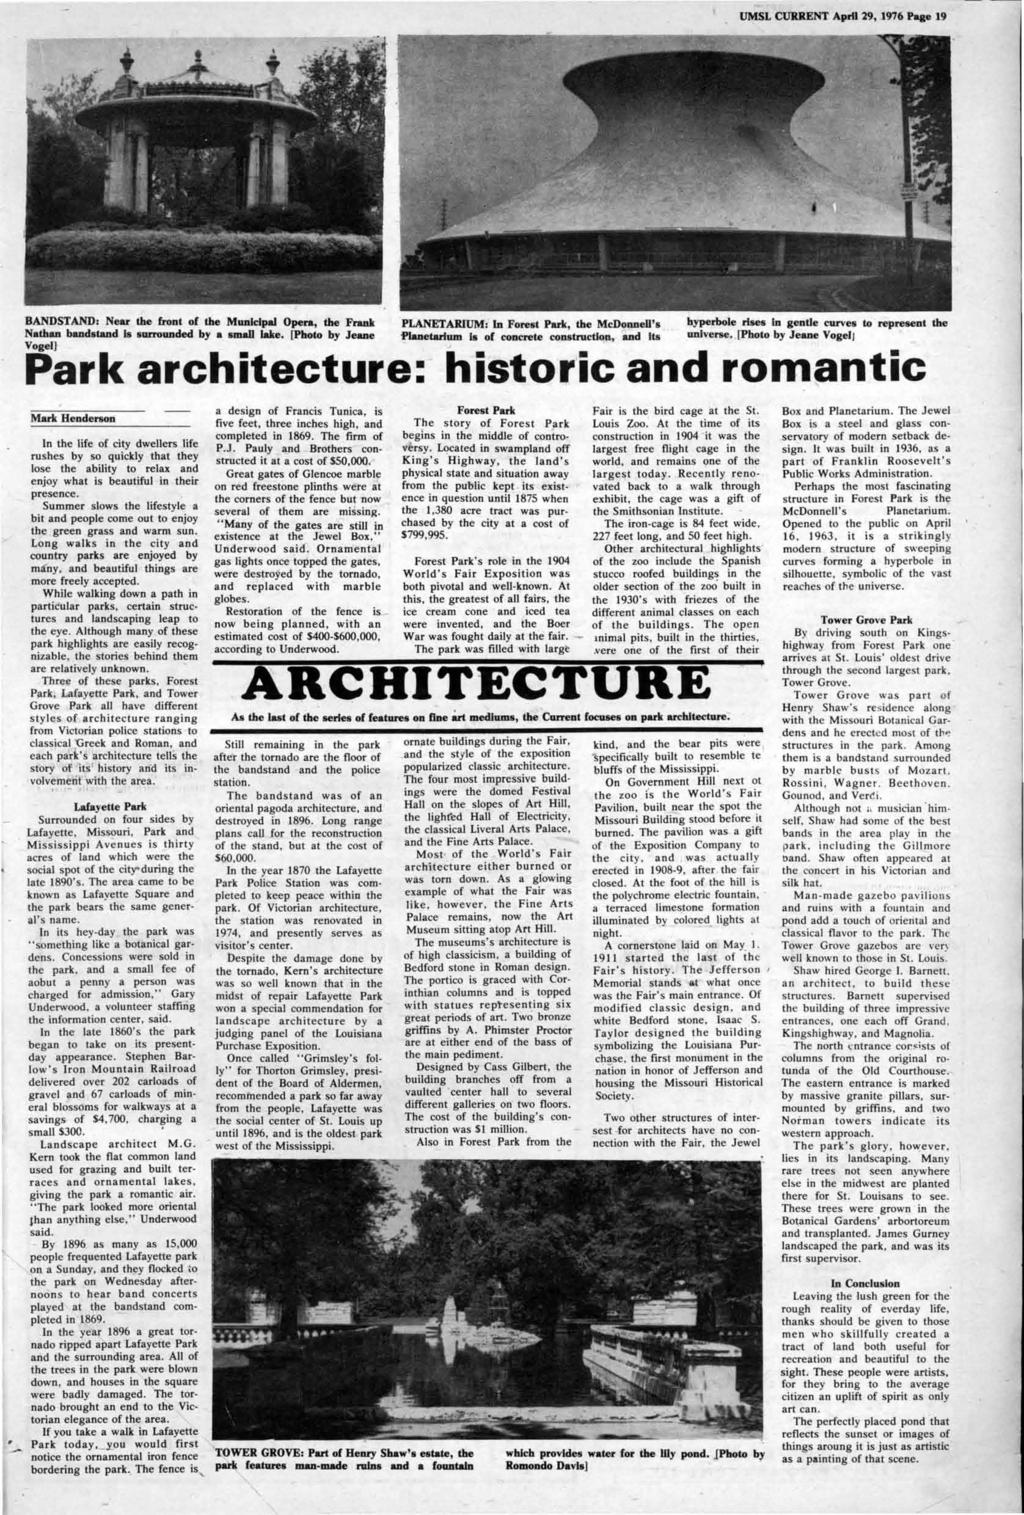 UMSL CURRENT AprU 29,1976 Page 19, BANDSTAND: Near the front of the Municipal Opera, the Frank PLANETARIUM: In Forest Park, the McDonneU's hyperbole rises In gende curves to represent the Nathan